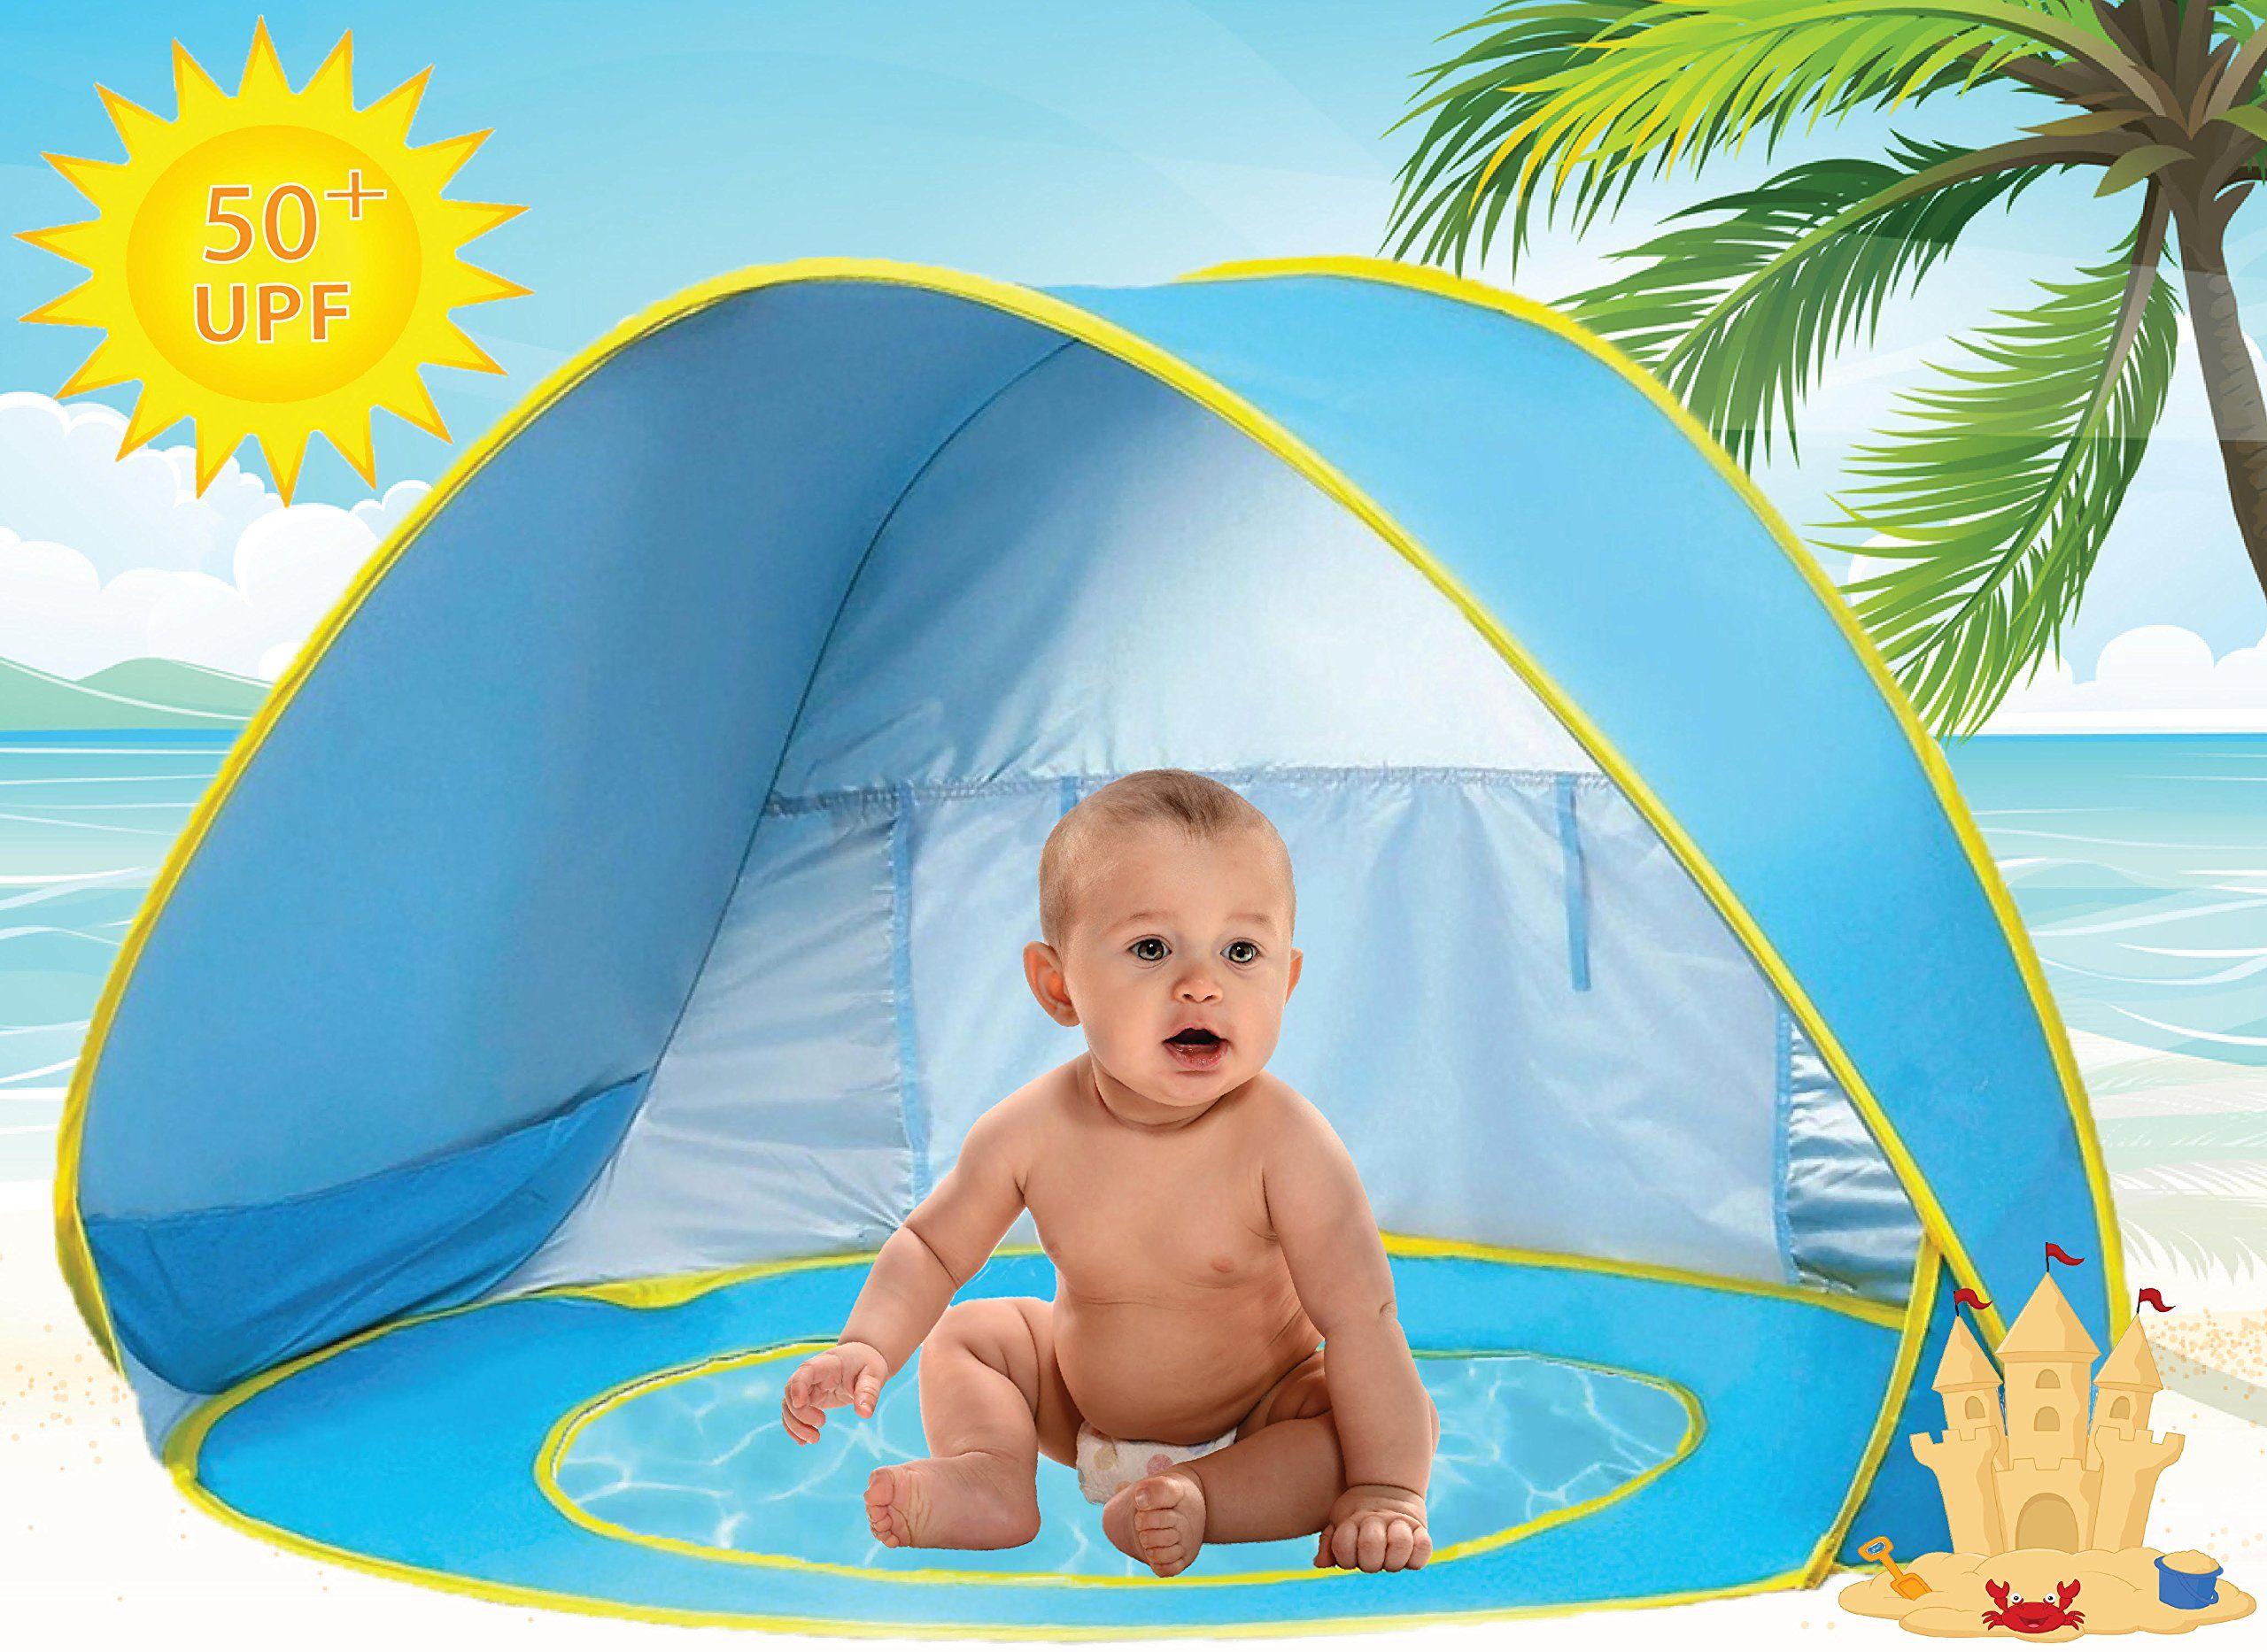 Baby Beach Tent Pool UV Protection Sun Shelter Pop Up for Kids - Blue Yellow.  sc 1 st  Pinterest & Baby Beach Tent Pool UV Protection Sun Shelter Pop Up for Kids ...